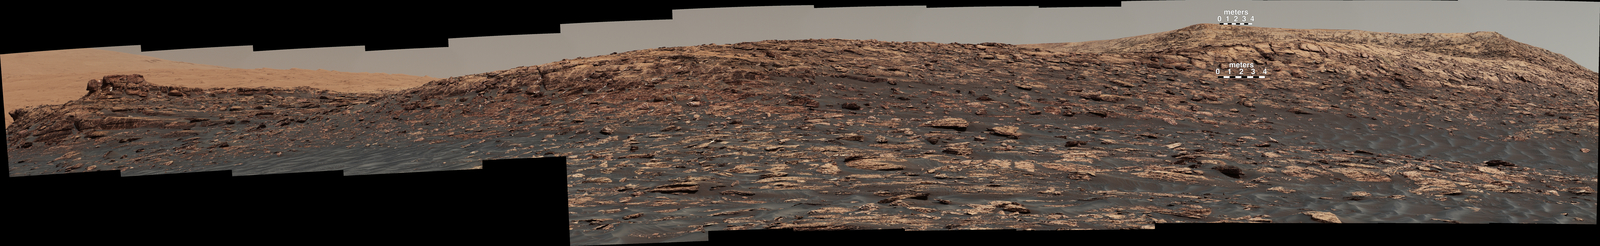 """Vera Rubin Ridge,"" a favored destination for NASA's Curiosity Mars rover even before the rover landed in 2012, rises near the rover nearly five years later in this panorama from Curiosity's Mast Camera (Mastcam).  Two scale bars of 4 meters (13.1 feet) provide size information for features near the bottom of the ridge and at the highest point visible on the ridge."